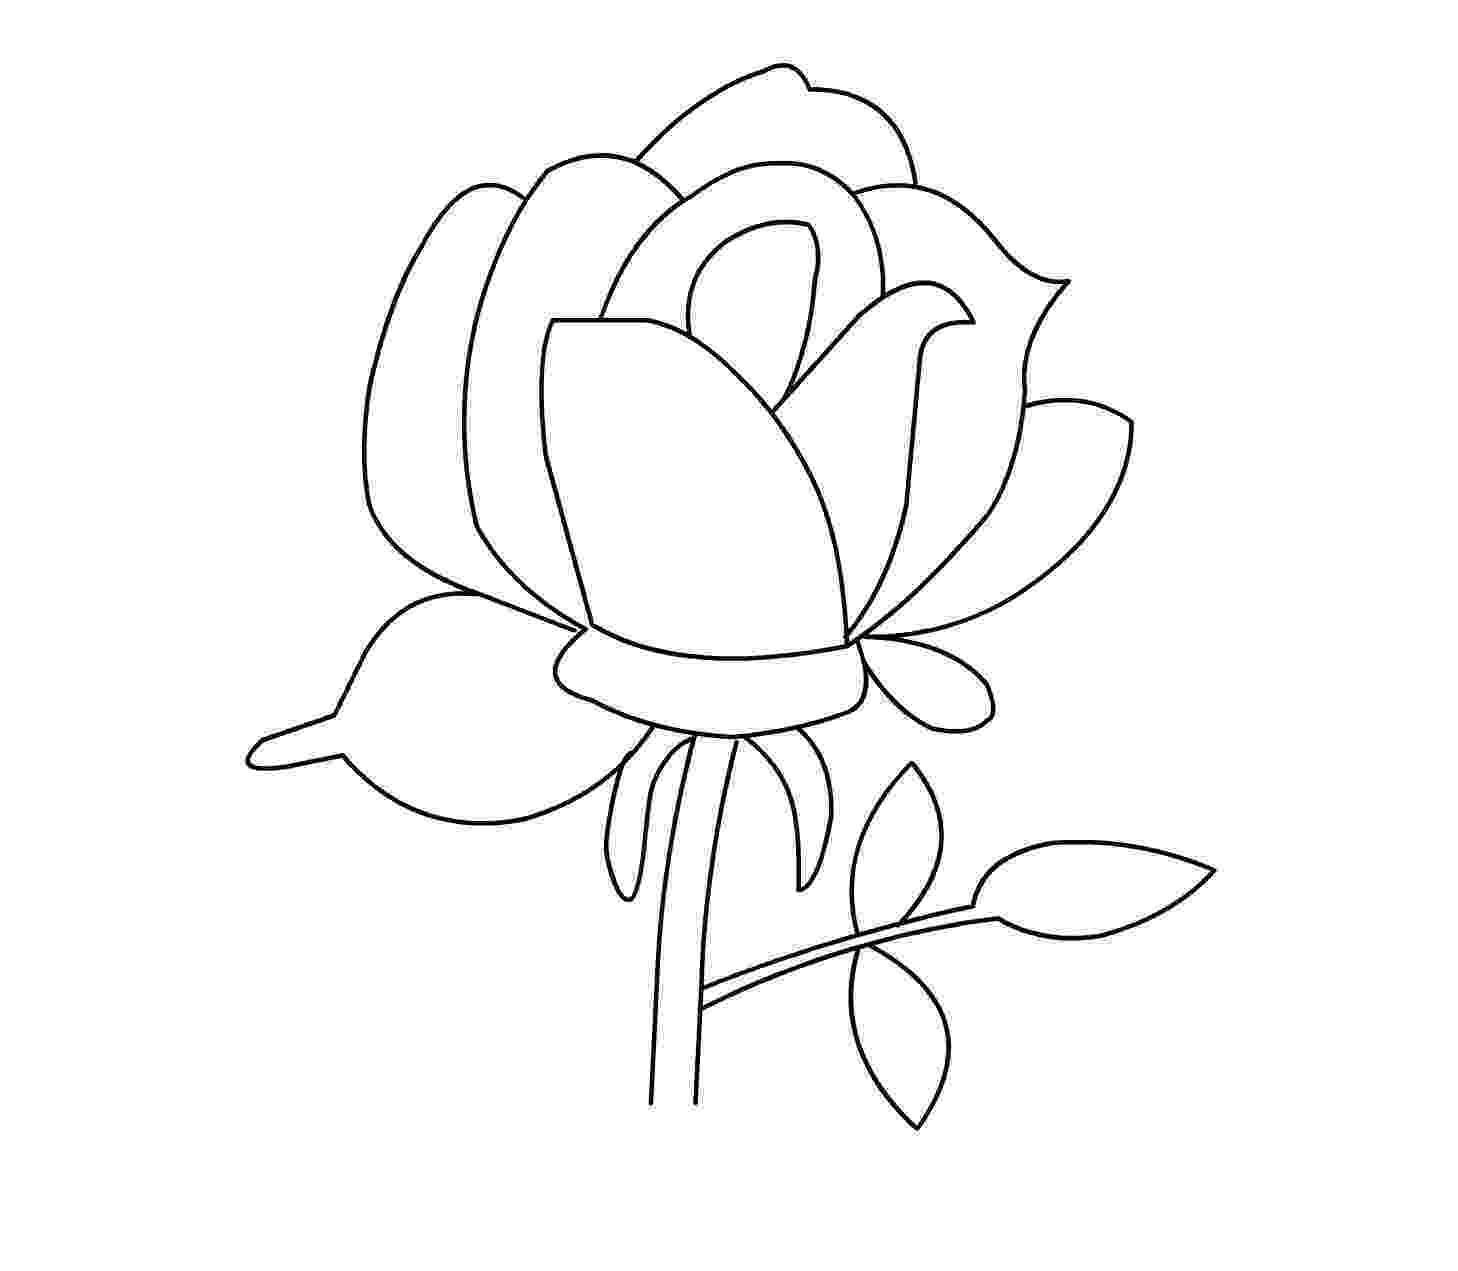 rose coloring sheets free printable roses coloring pages for kids coloring rose sheets